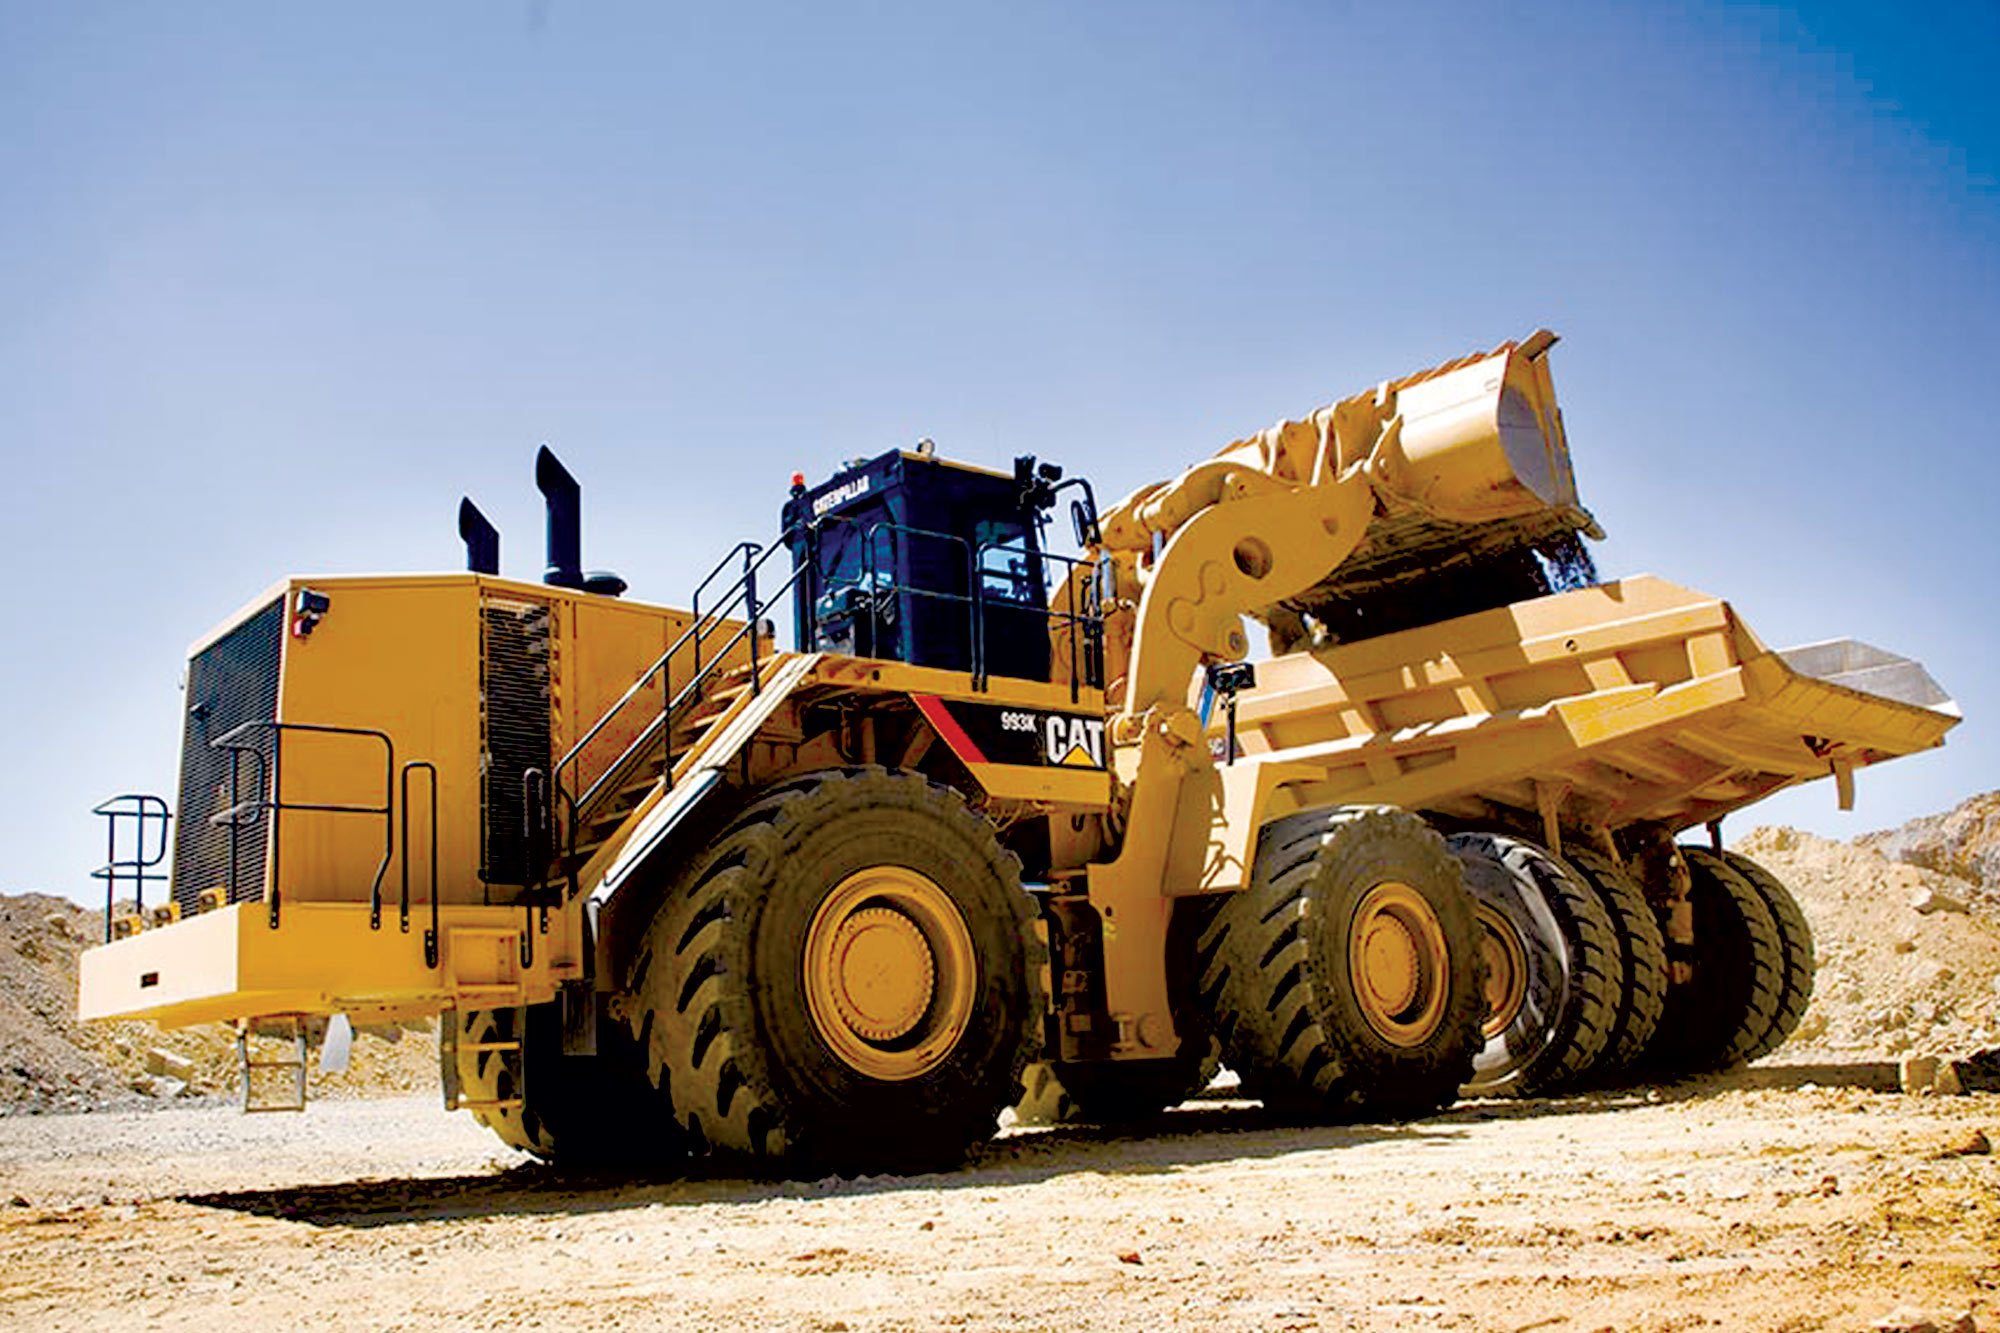 Cat Detect enhances operator awareness and mine safety